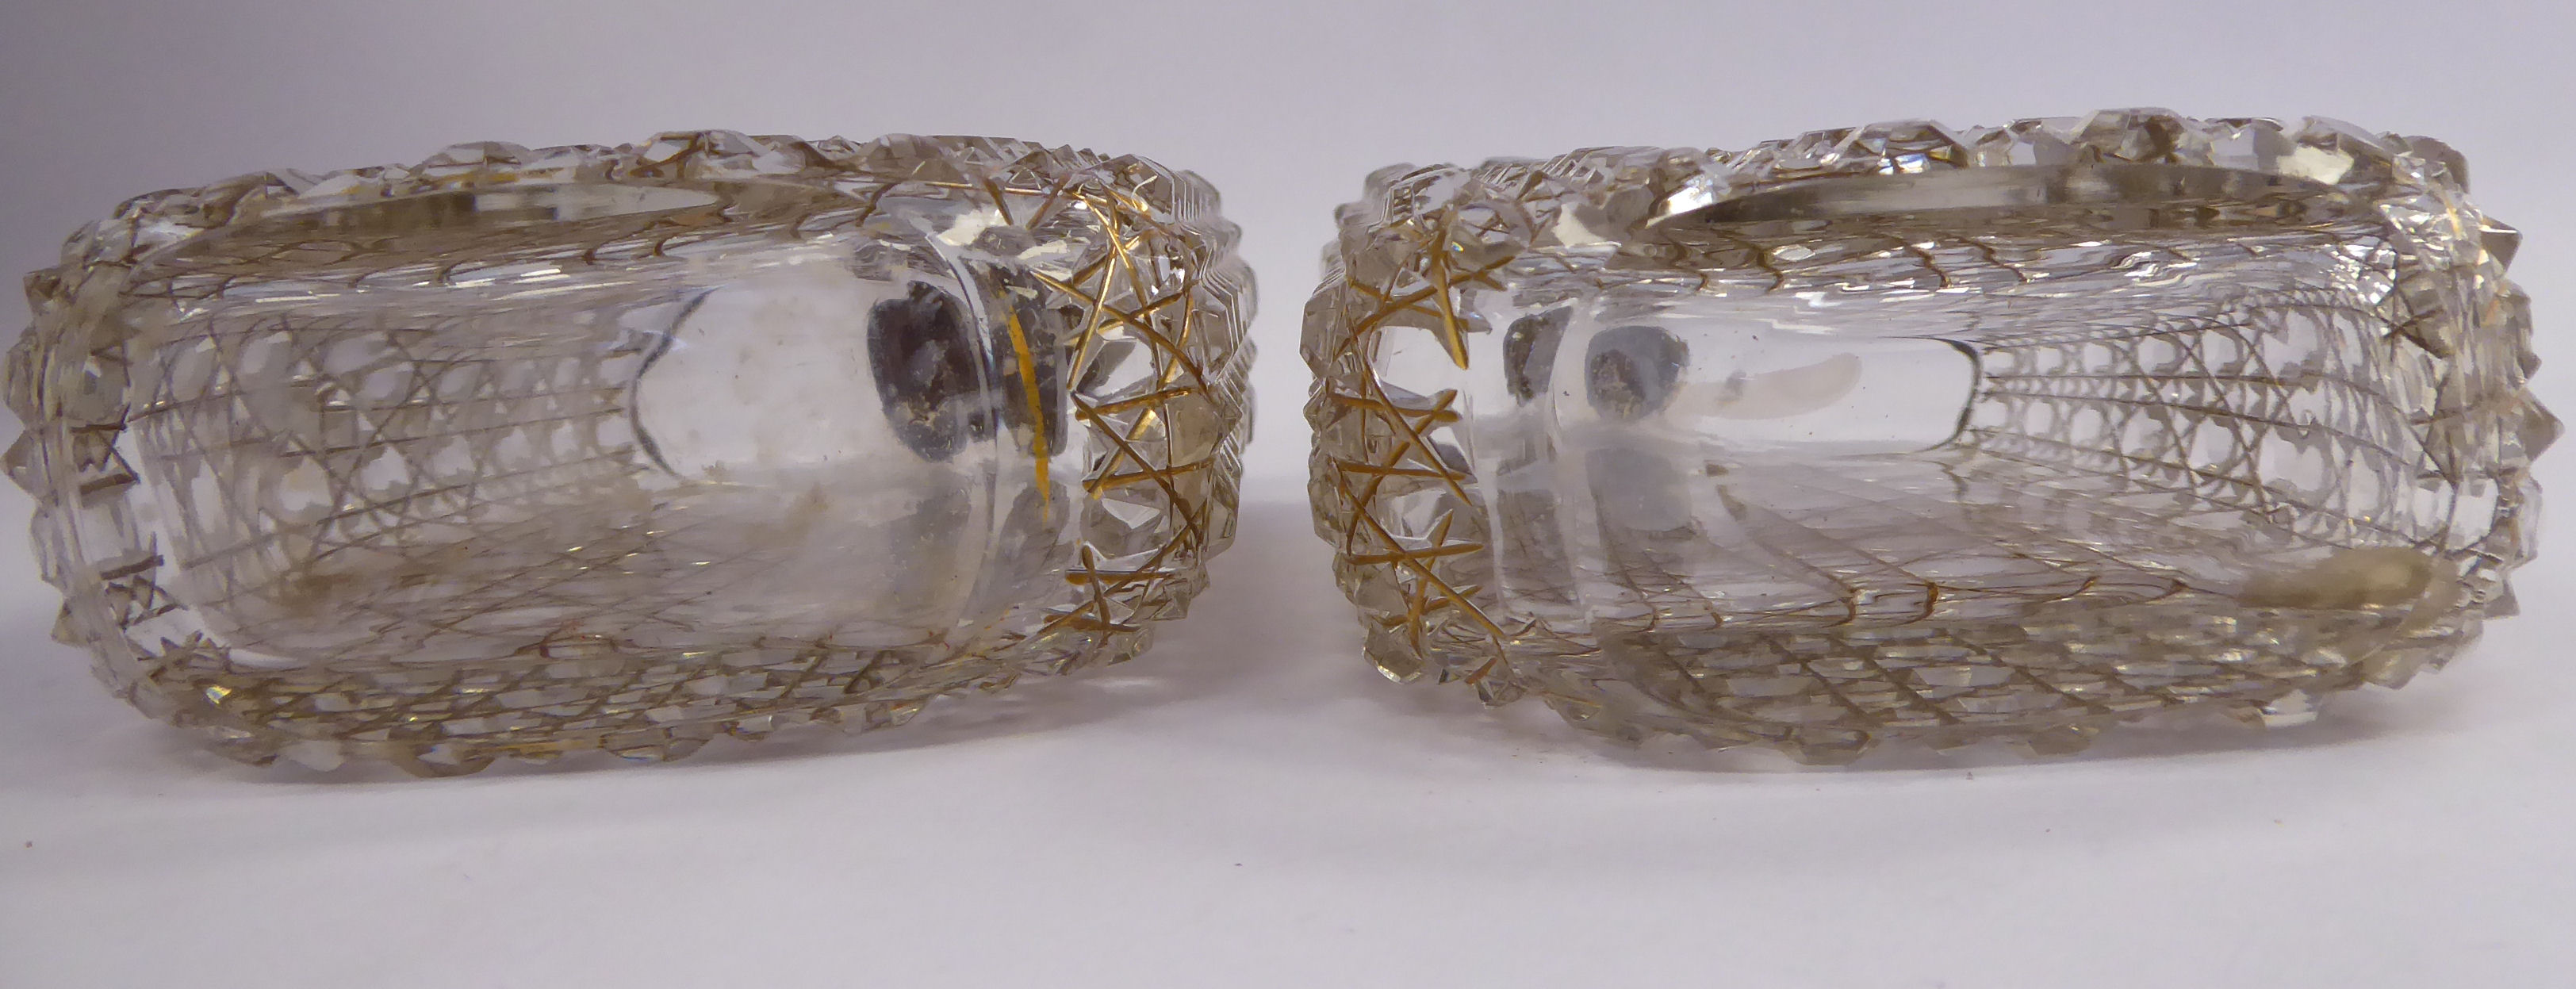 Lot 19 - A pair of mid 19thC uniformly hobnail, line-cut and gilded,